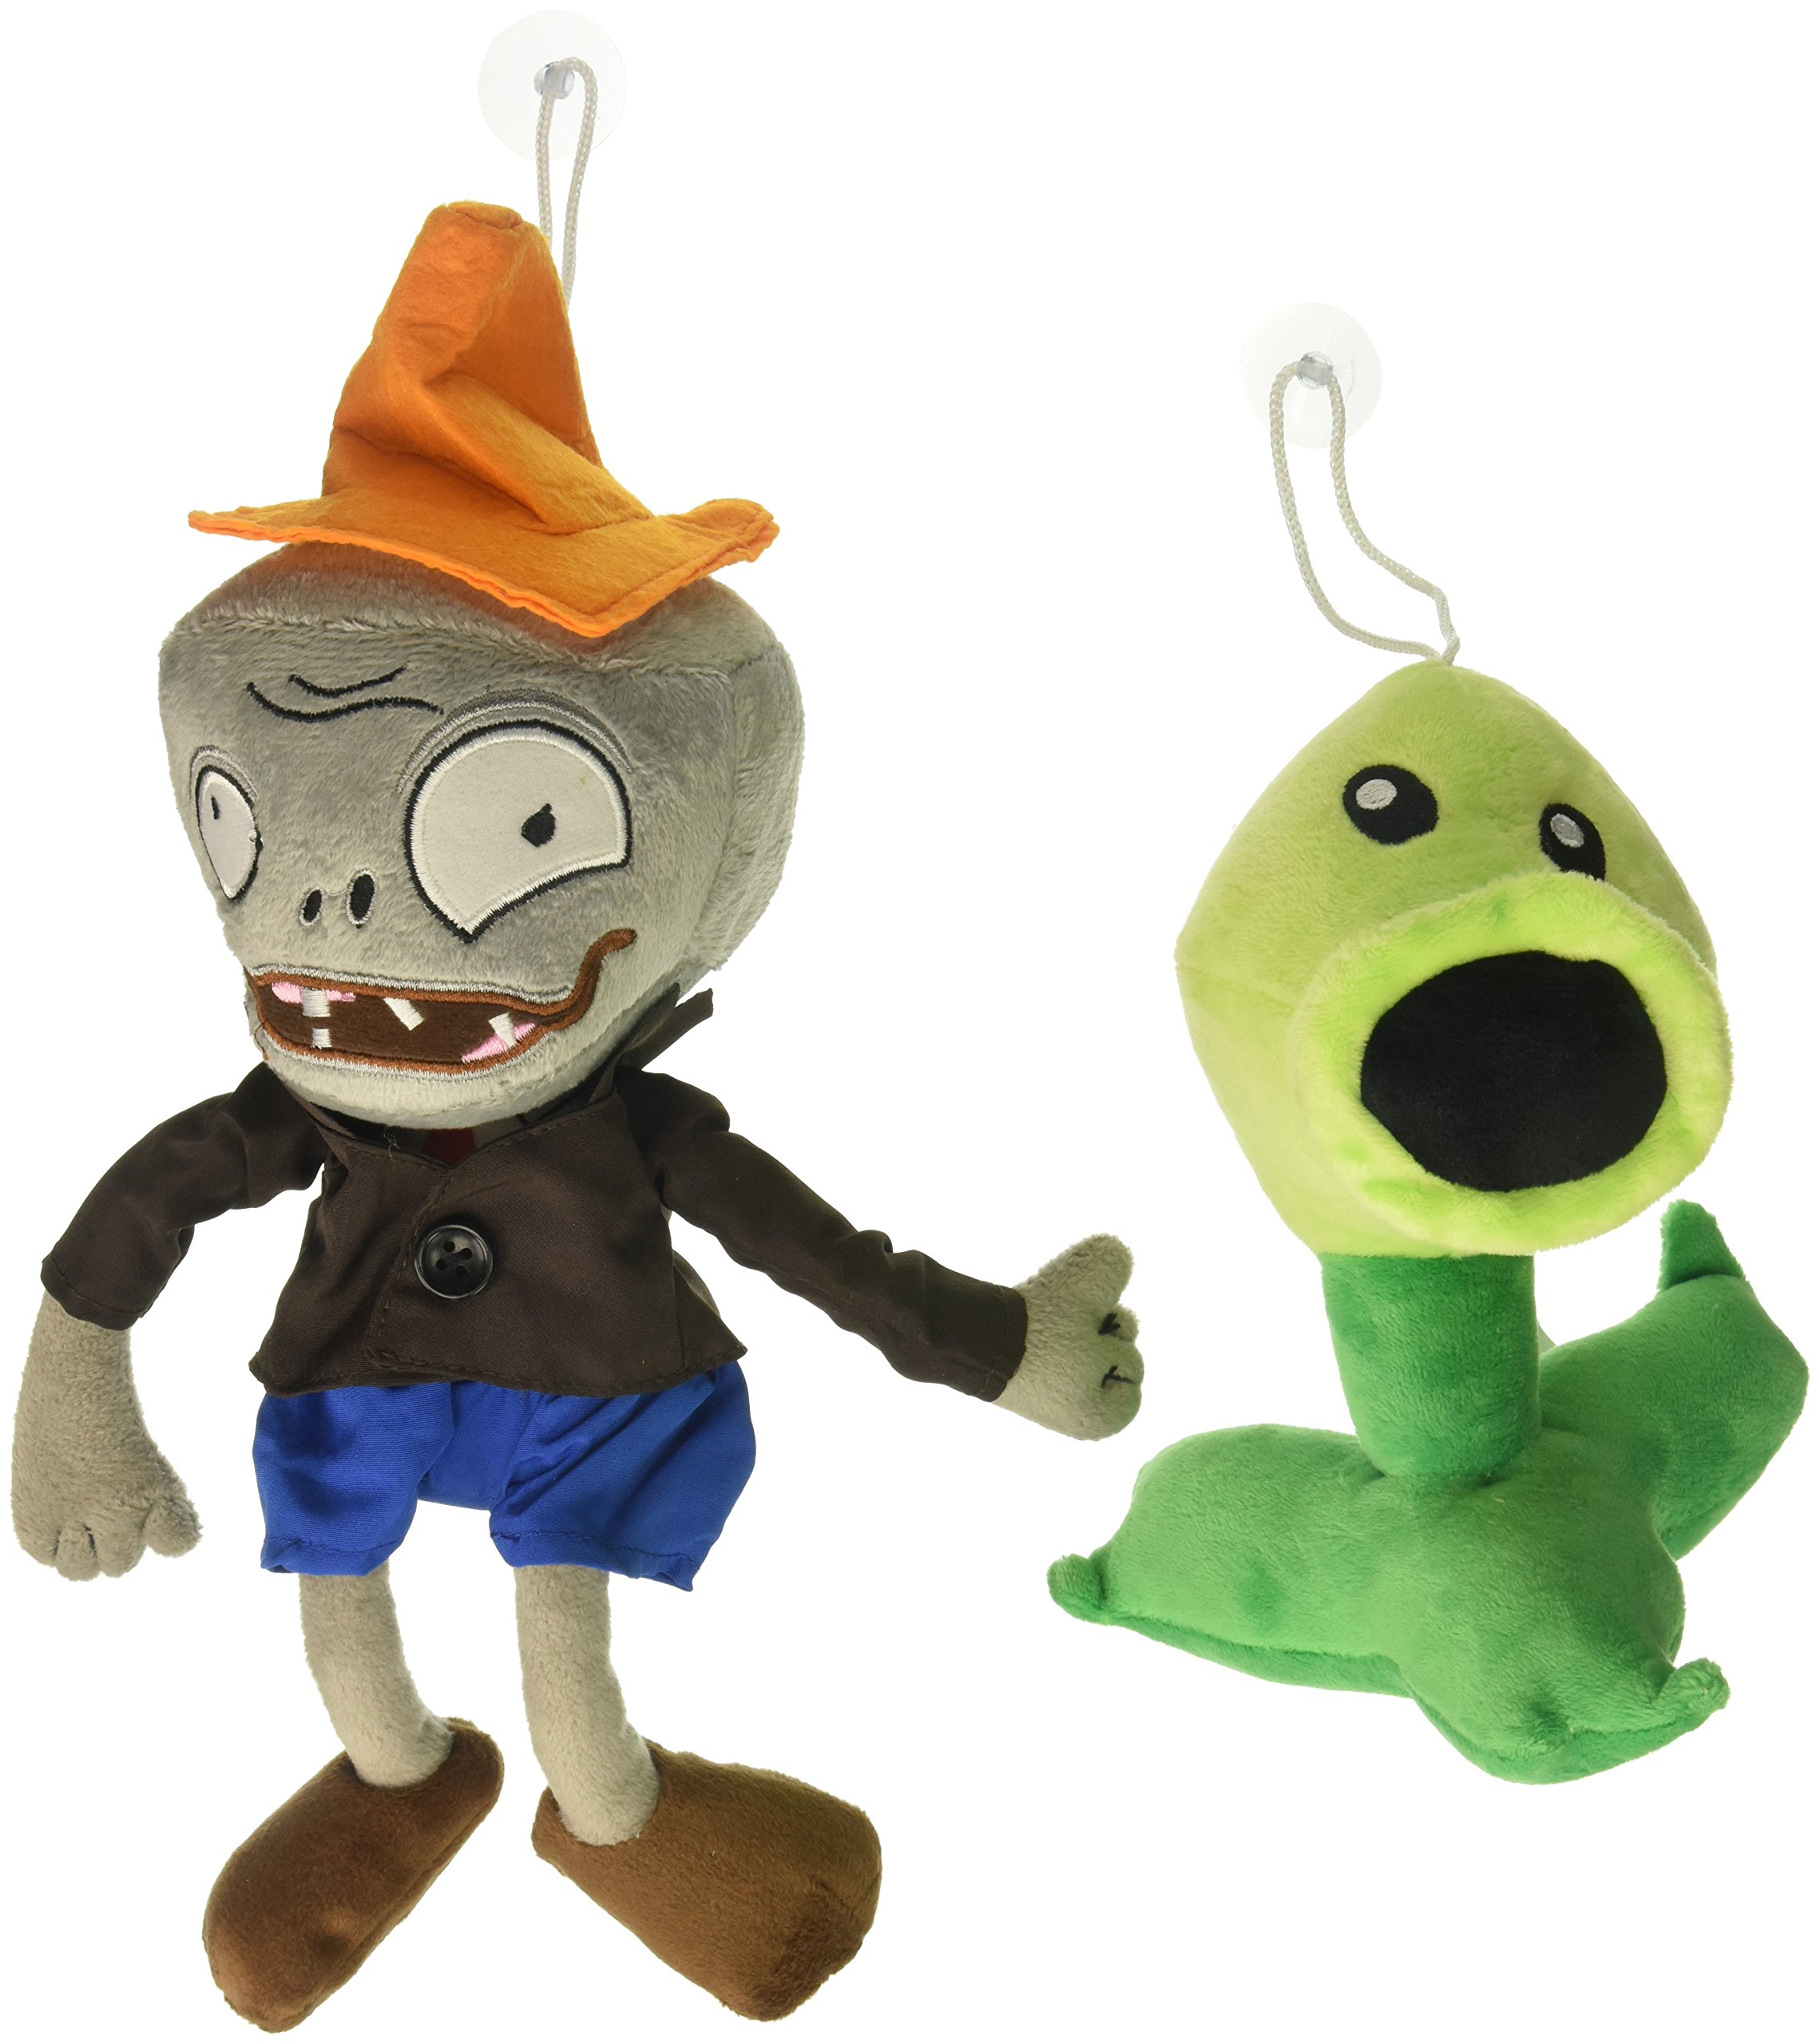 Toyswill Plants Vs Zombies Plush Toys Conehead Zombie 10'', Peashooter 17cm/6.7'' Tall Plush by Generic